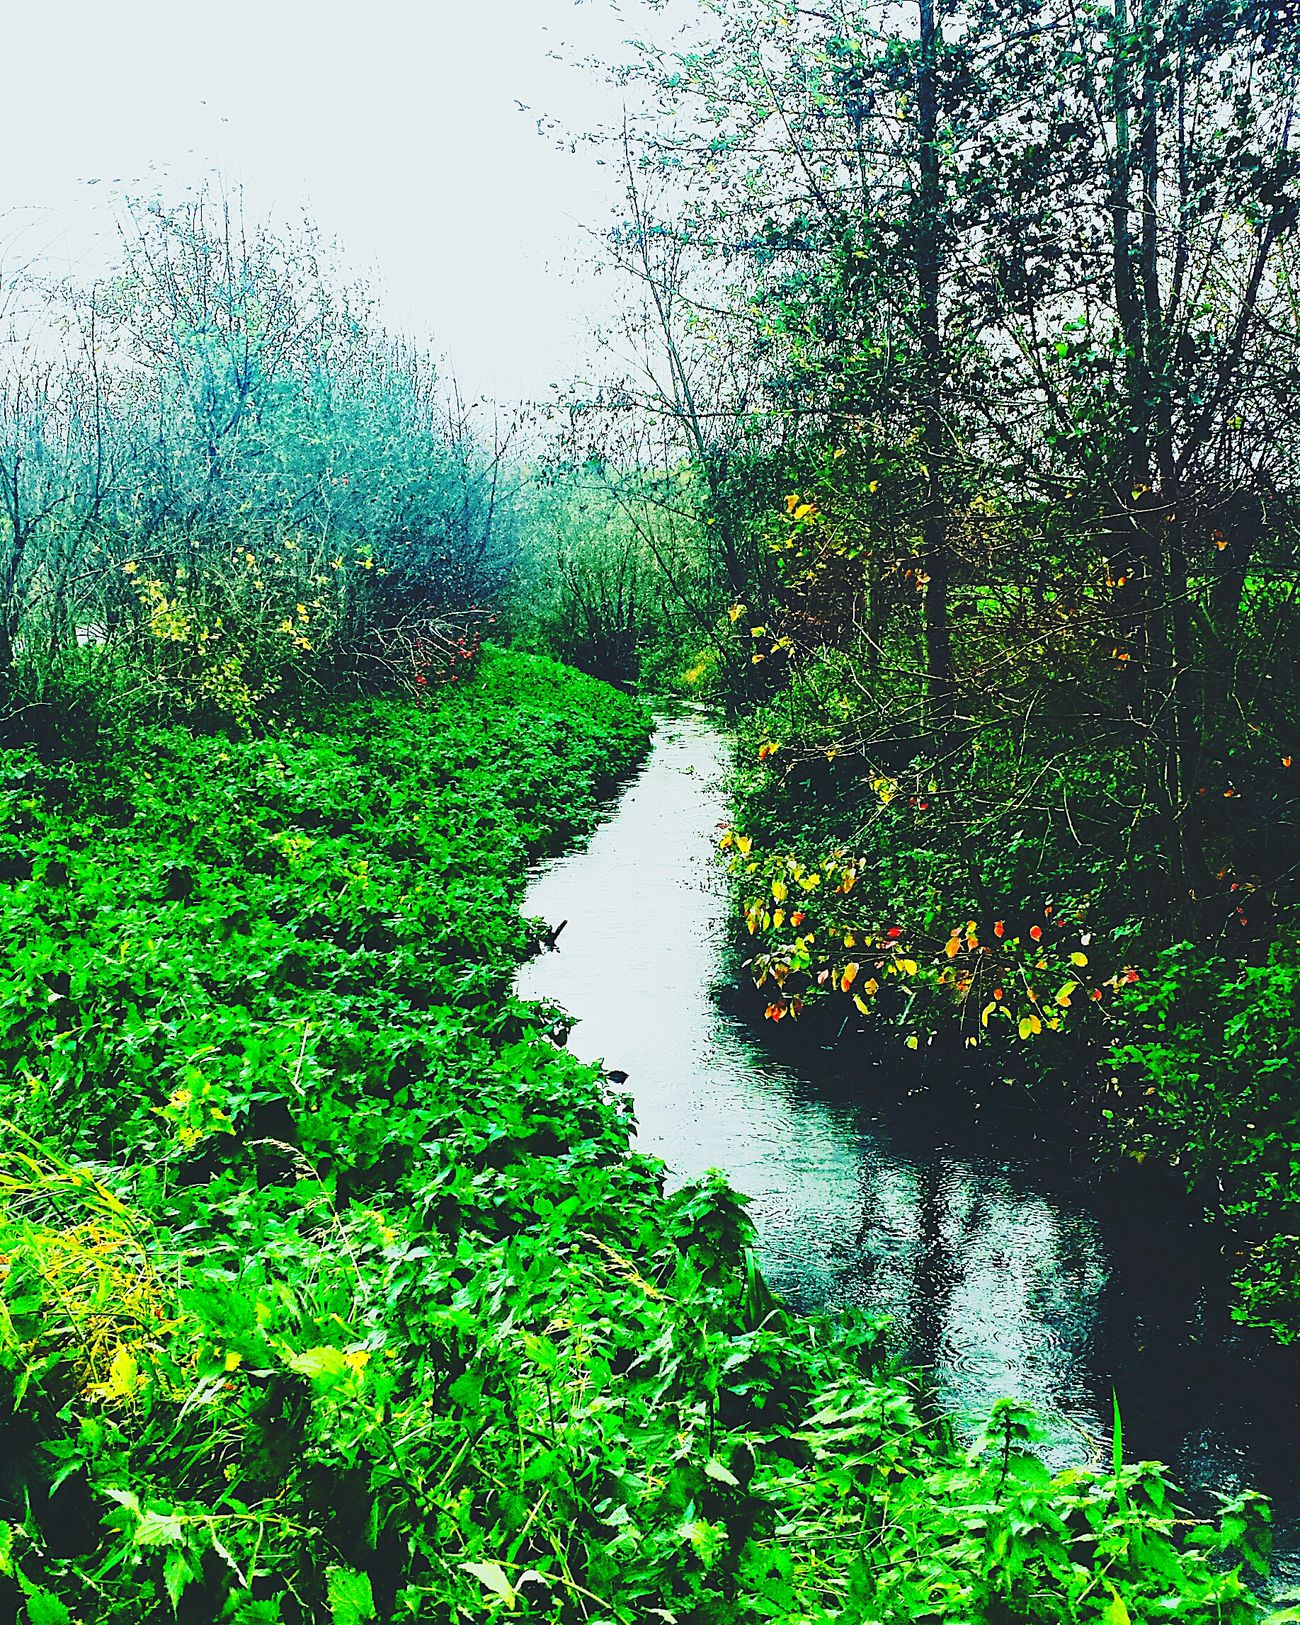 Nature Edit DOPE Love Life Hopeyoulikeit First Eyeem Photo Formorephotos Tim.loves.photography Instagram Contrast Deepintheforest River Madeingermany Winter Cold